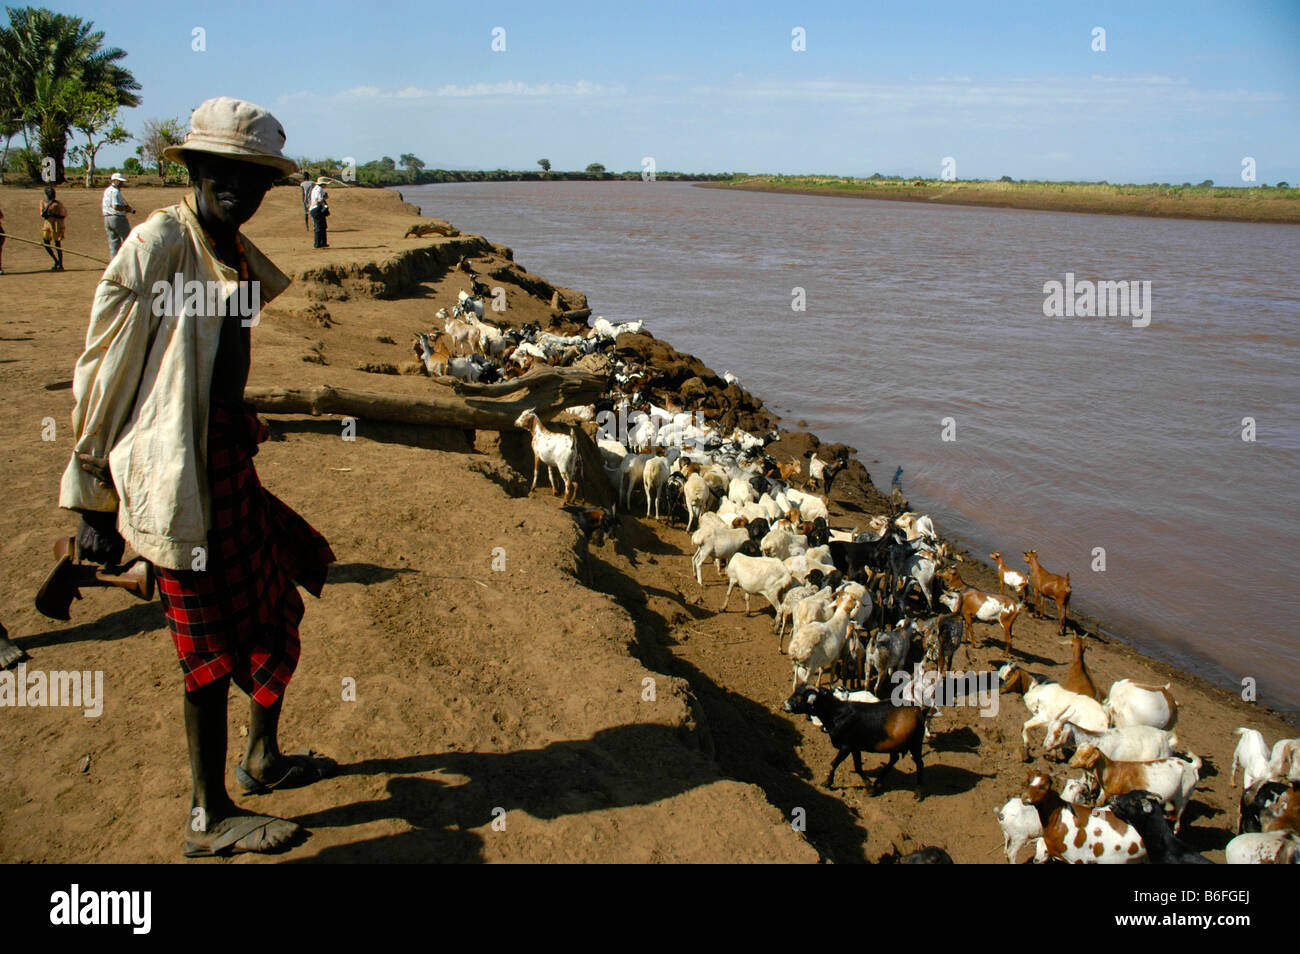 Shepard with goats at Omo River, Dashenesh people, Ethiopia, Africa Stock Photo